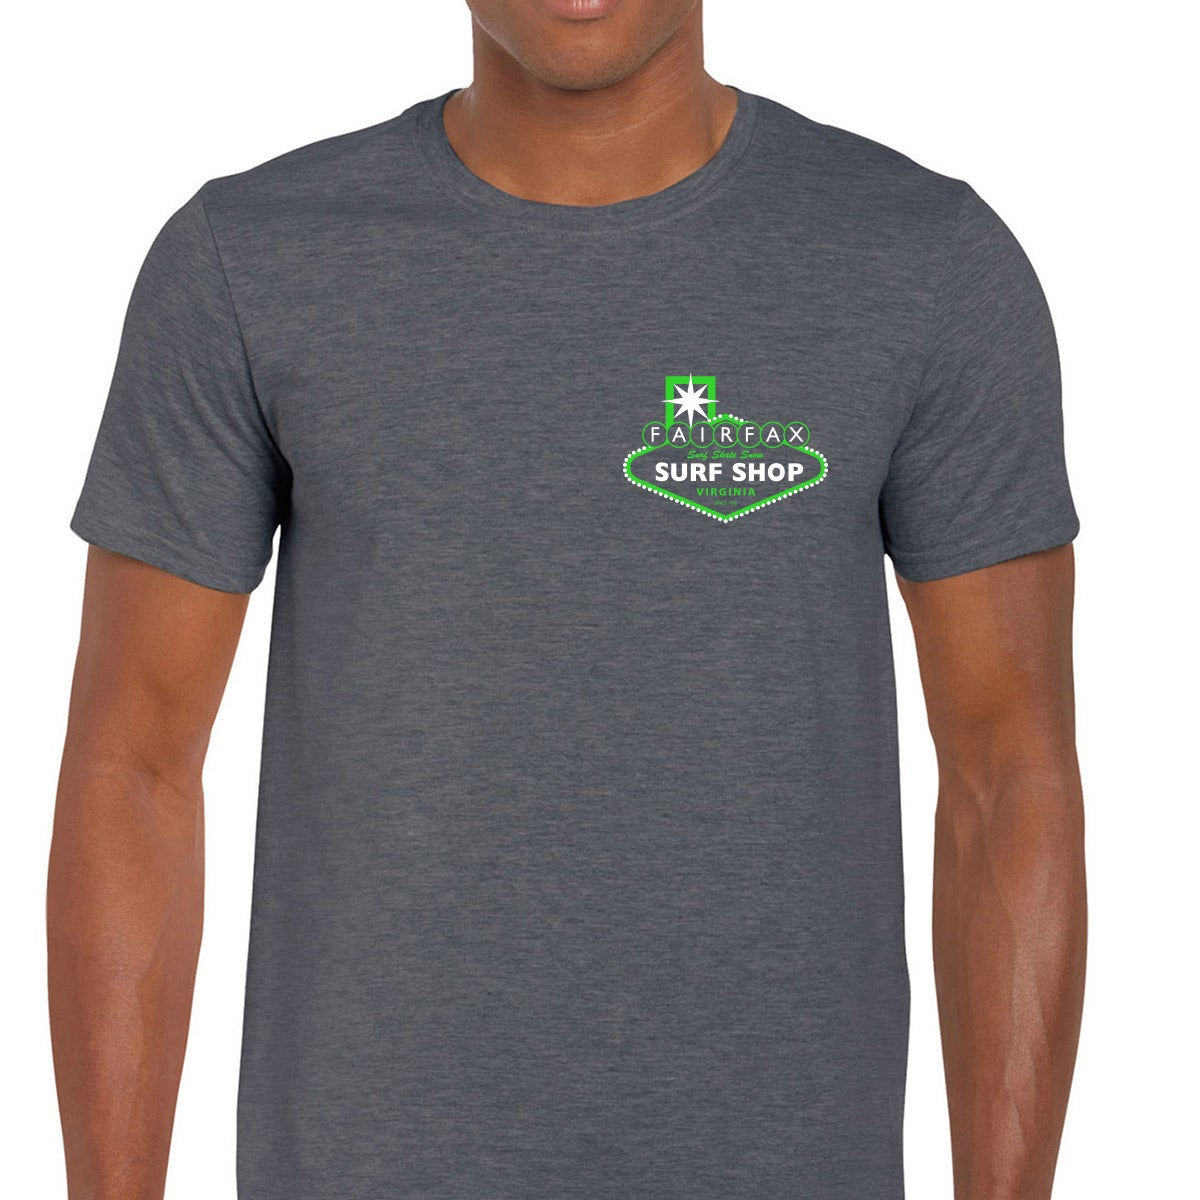 Image of Las Vegas Theme (Heather Grey/ Green & White)